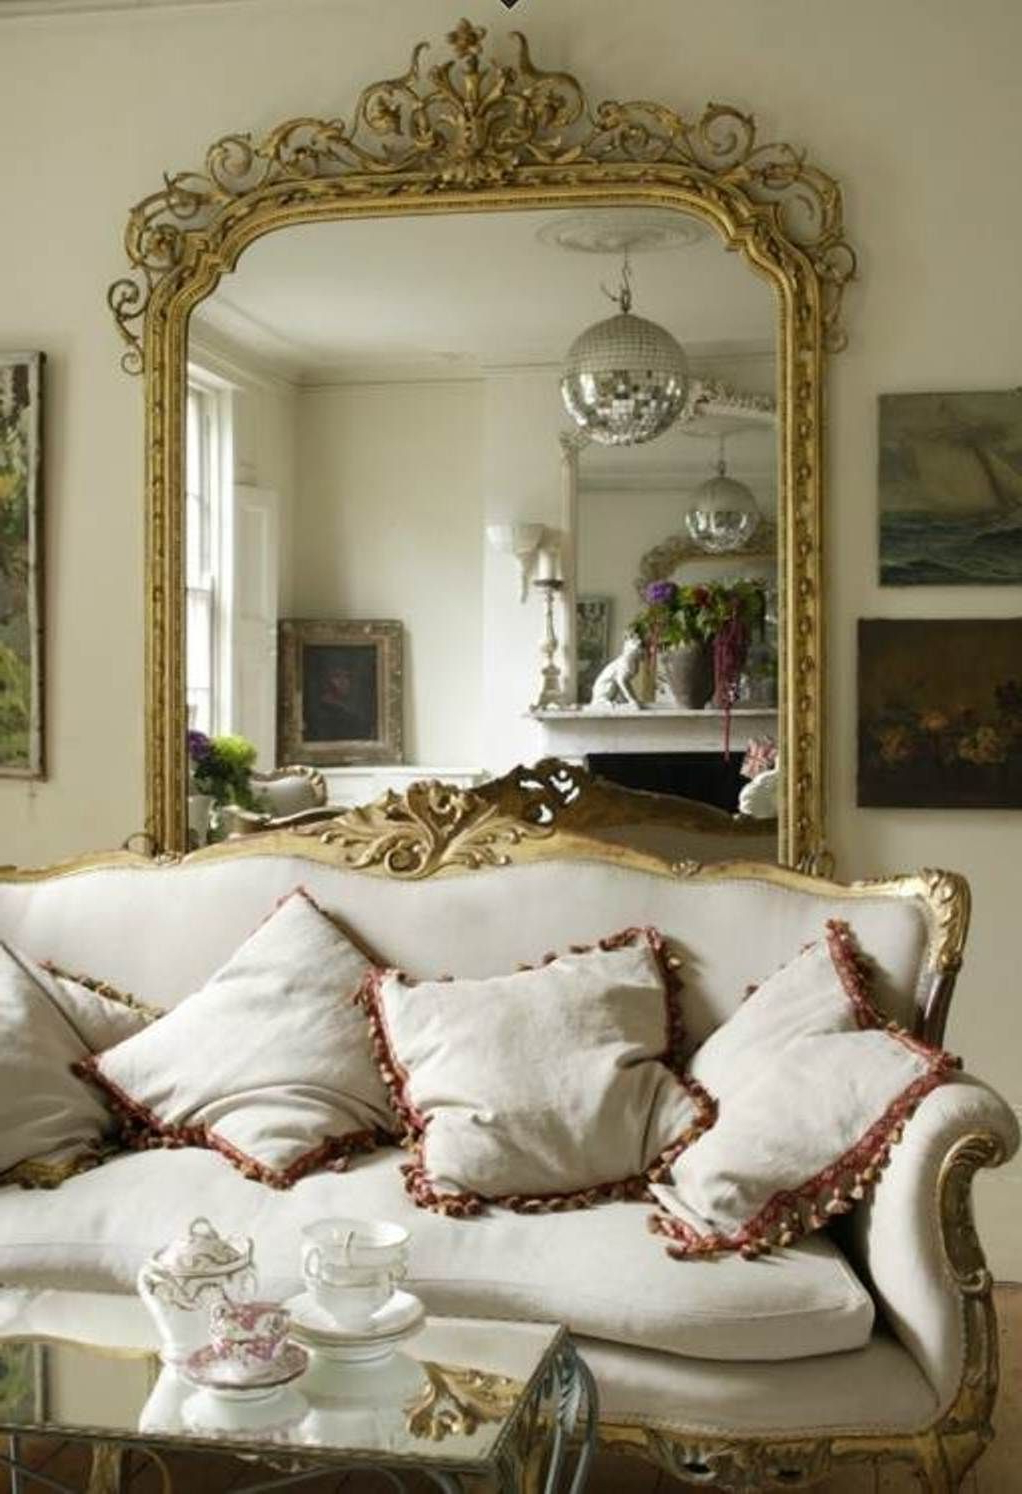 Decorative Wall Mirrors For Living Room For Decorative Wall Mirrors For Living Room (View 17 of 20)